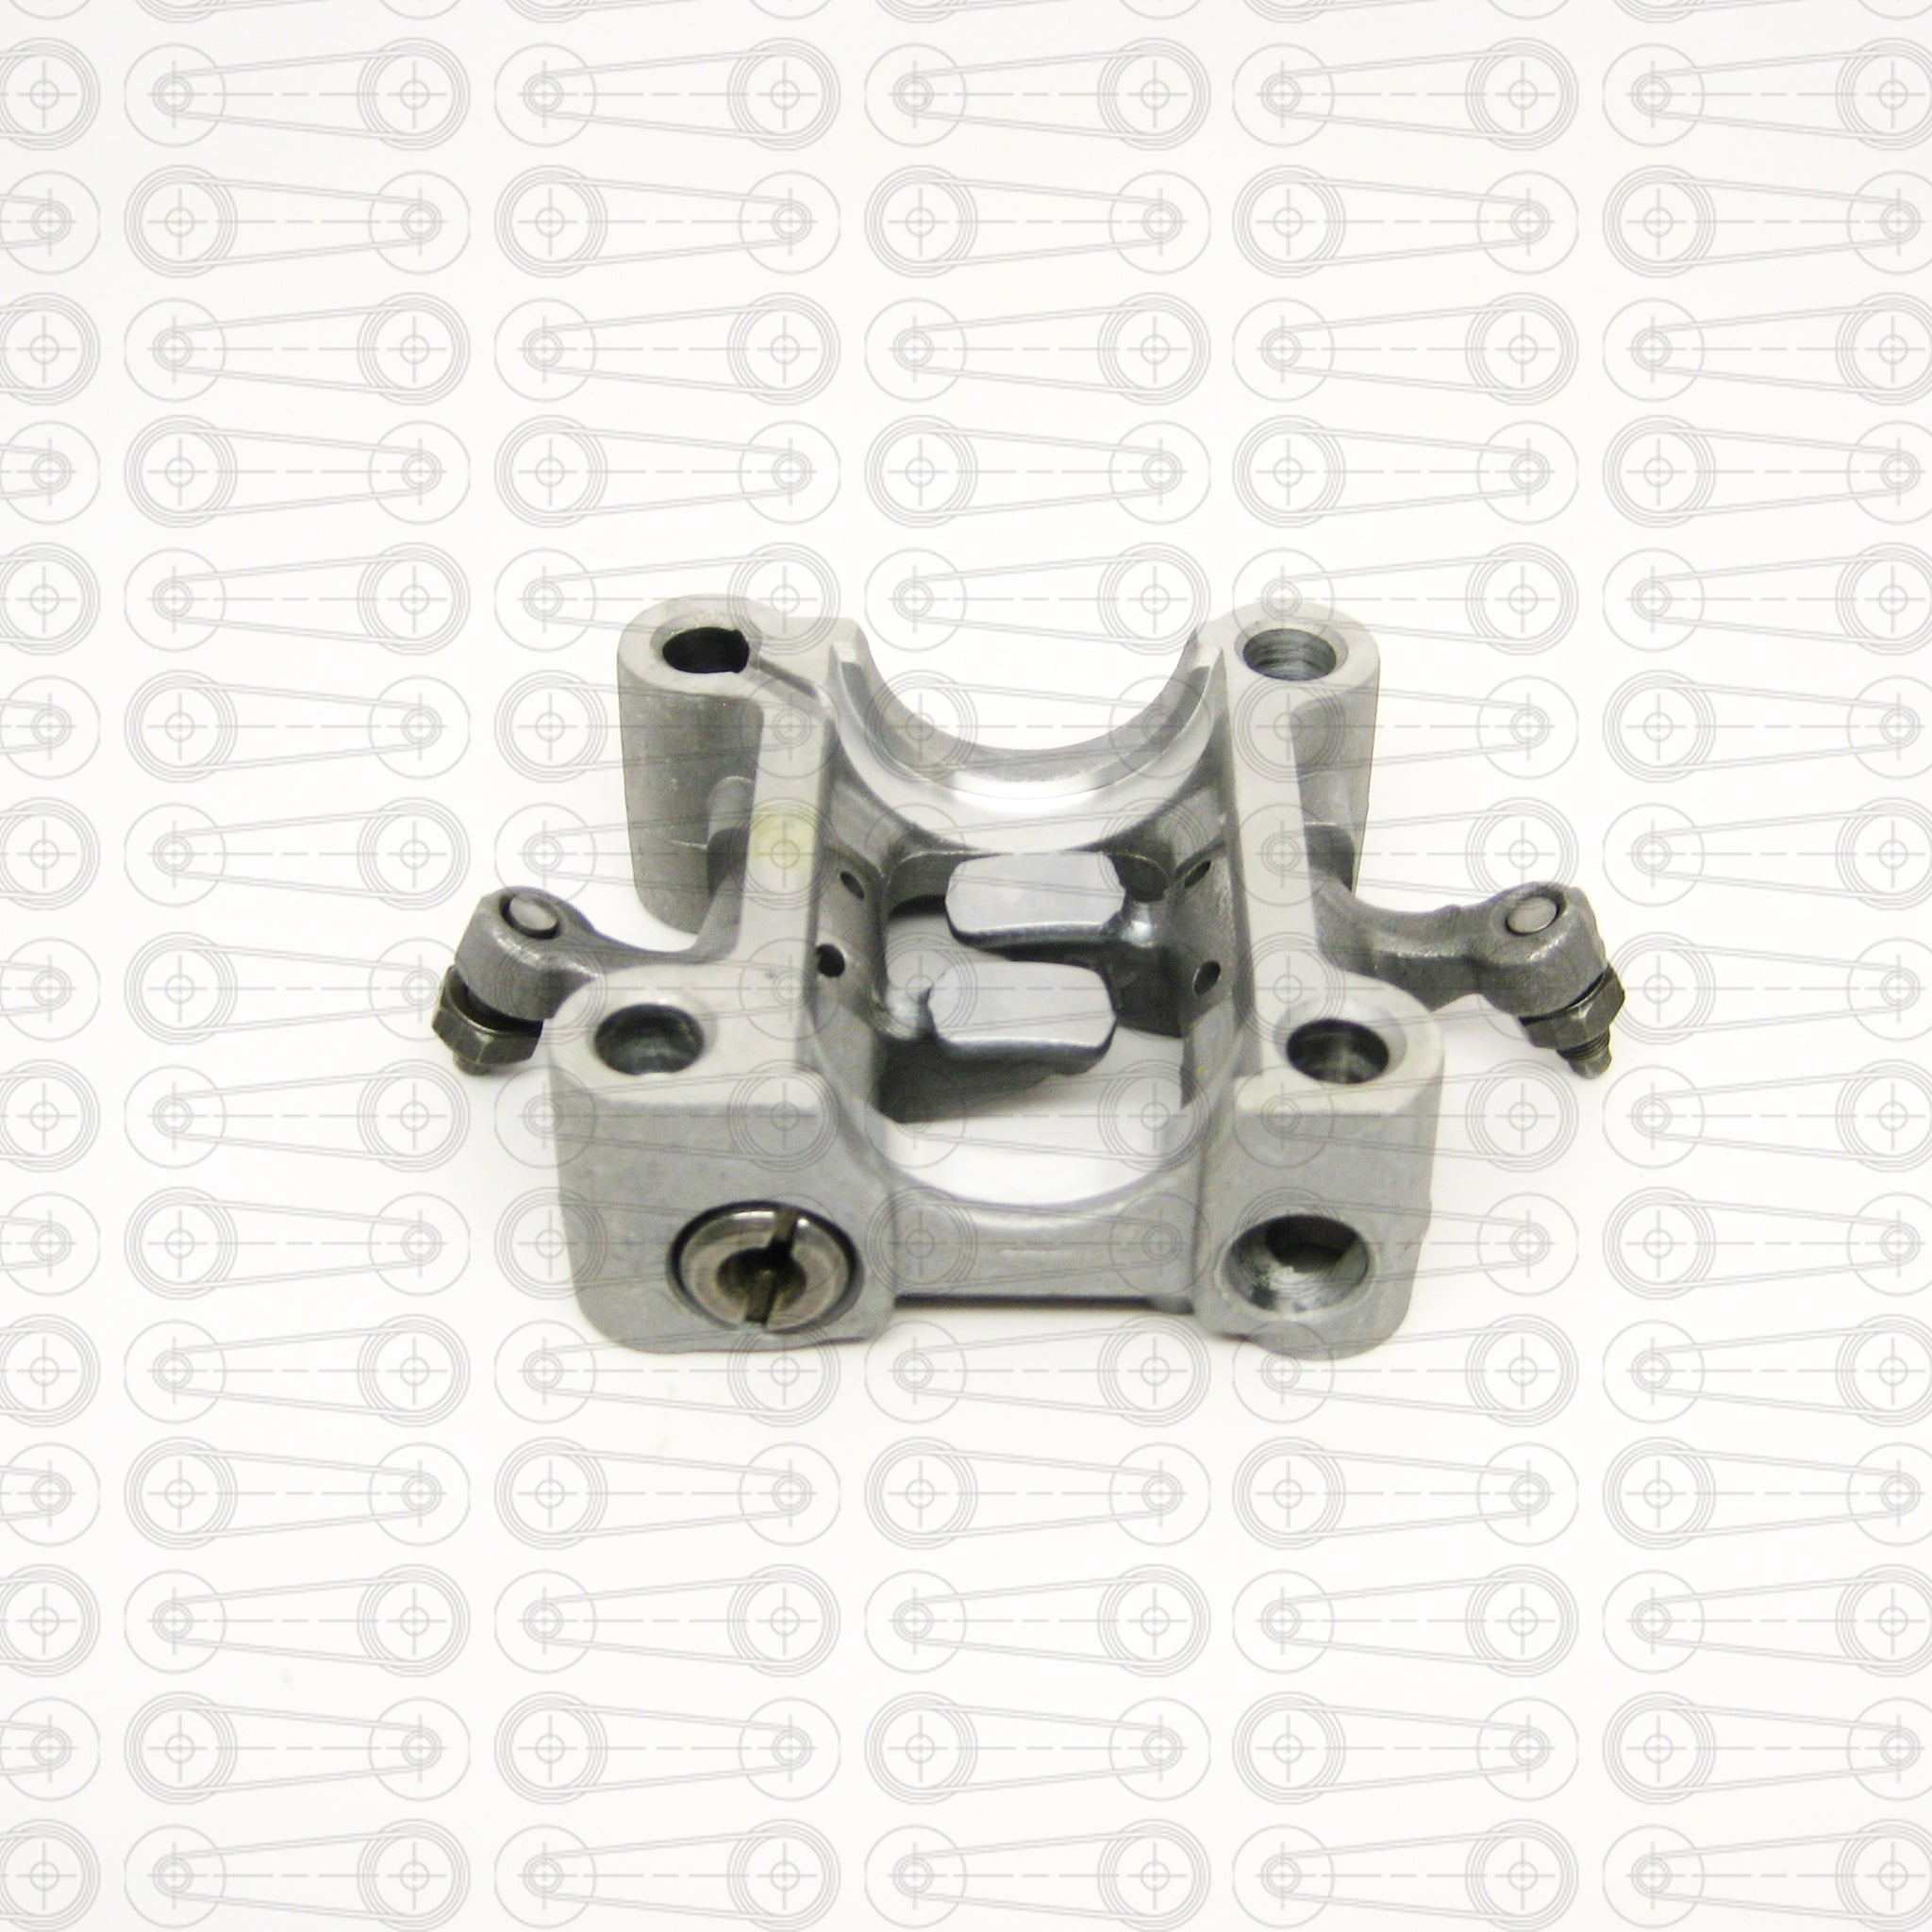 ROCKER/CAM ASSEMBLY 69mm (QMB)